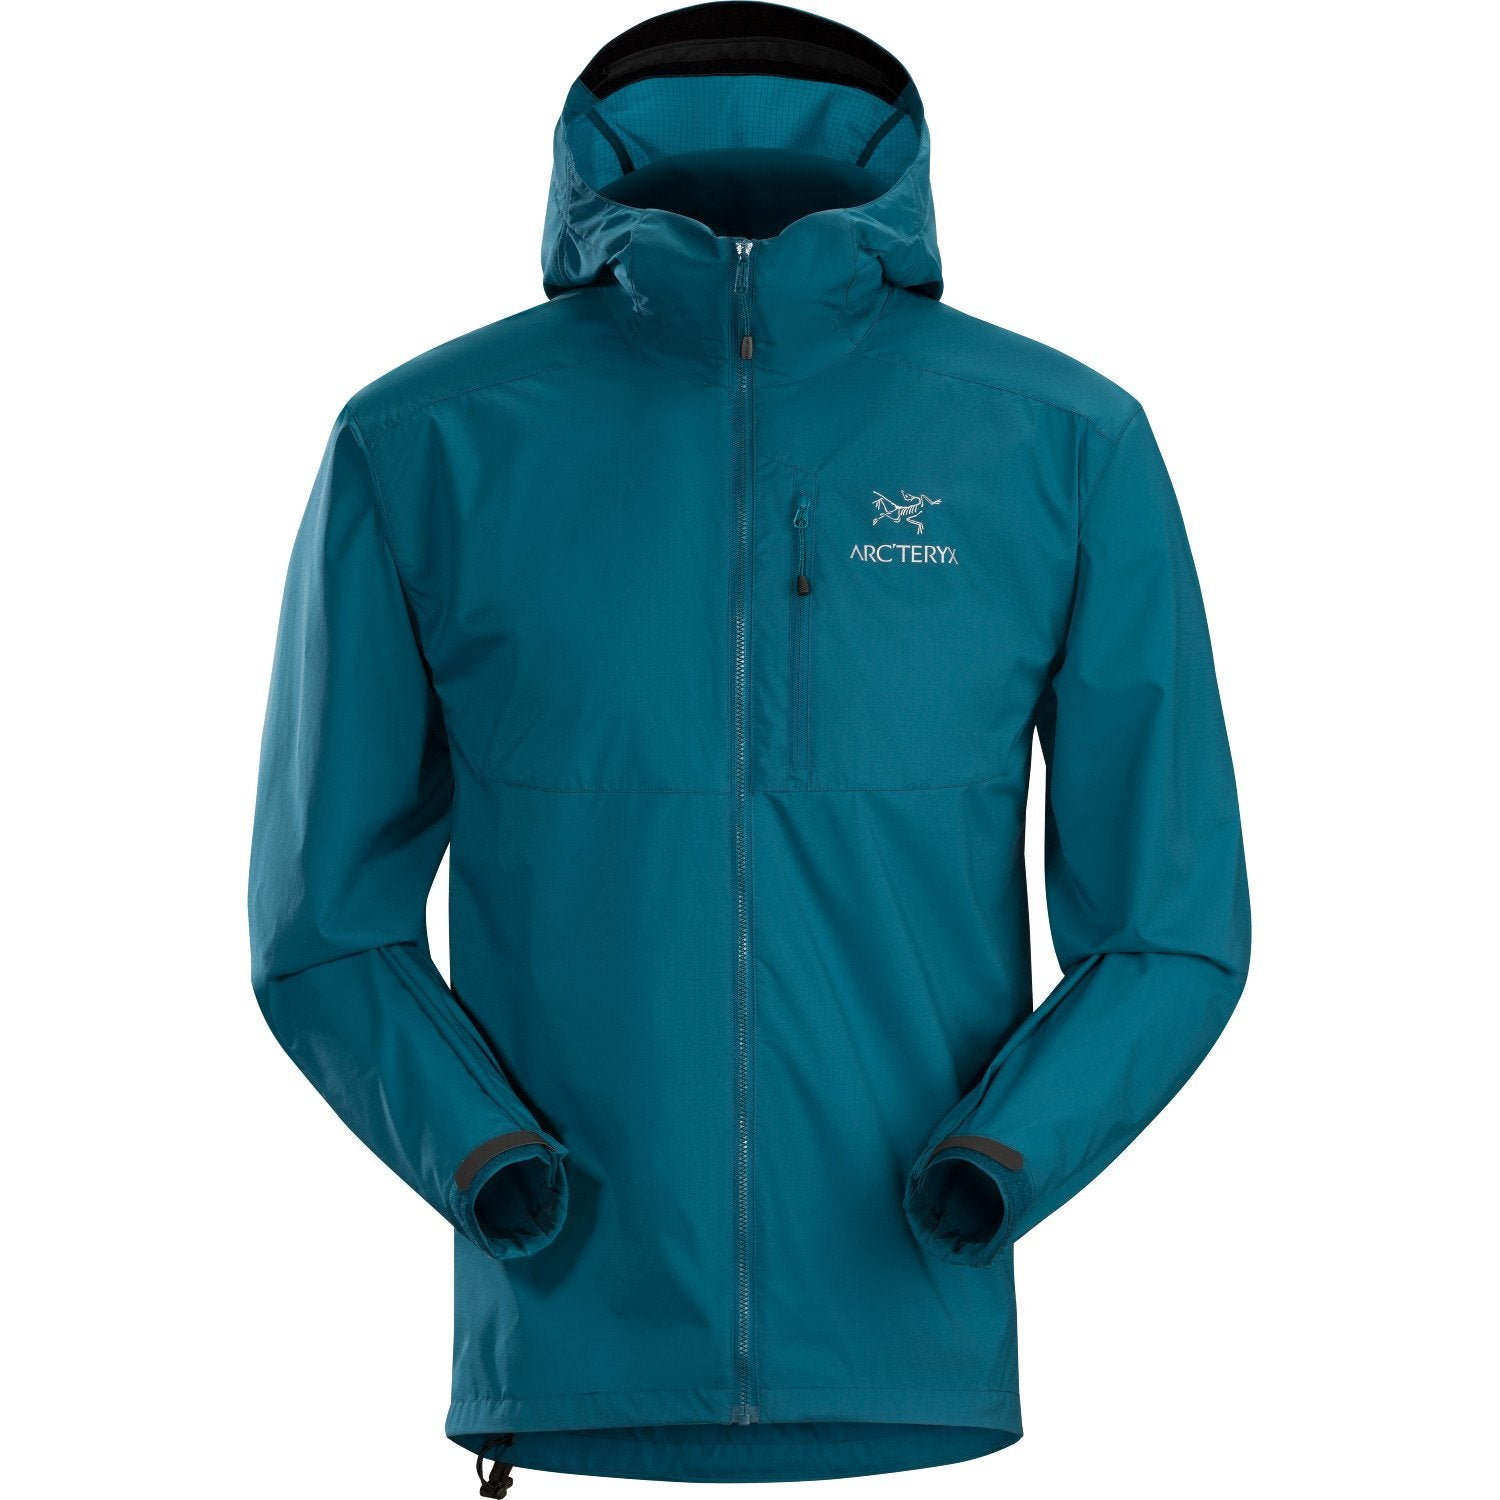 ArcTeryx Squamish Hoody in Lagoon Blue